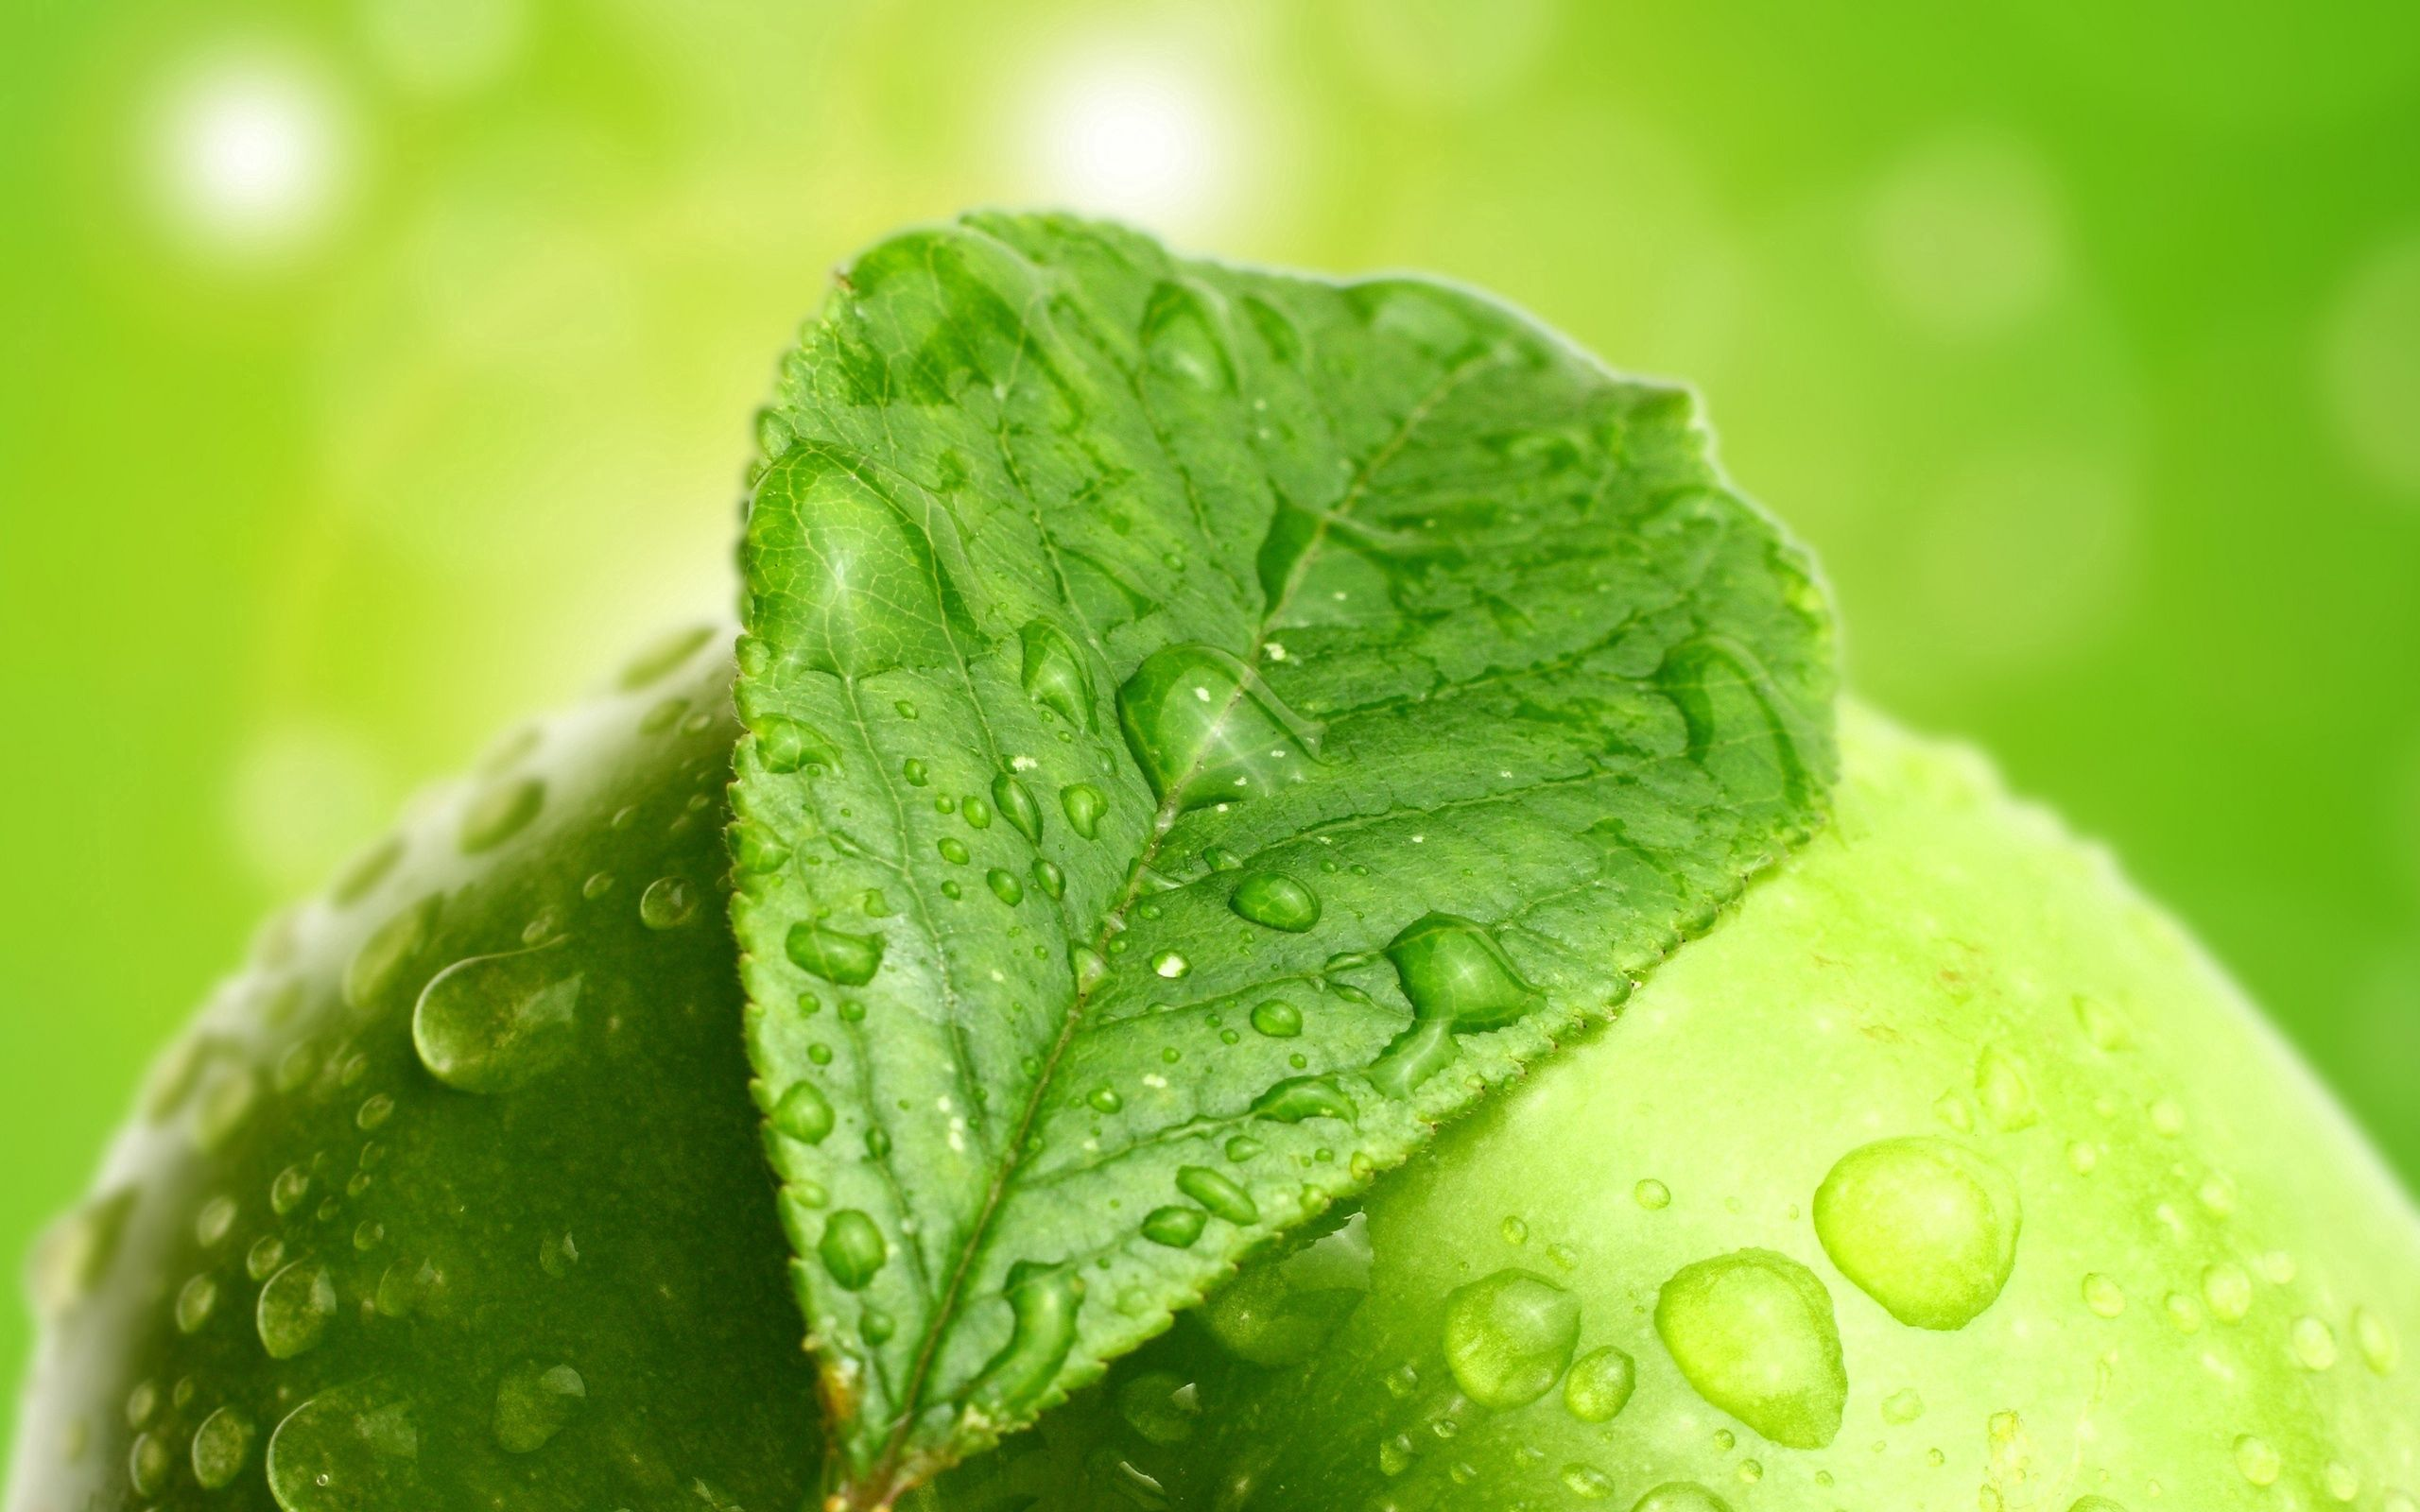 134520 download wallpaper Macro, Sheet, Leaf, Drops, Apple screensavers and pictures for free